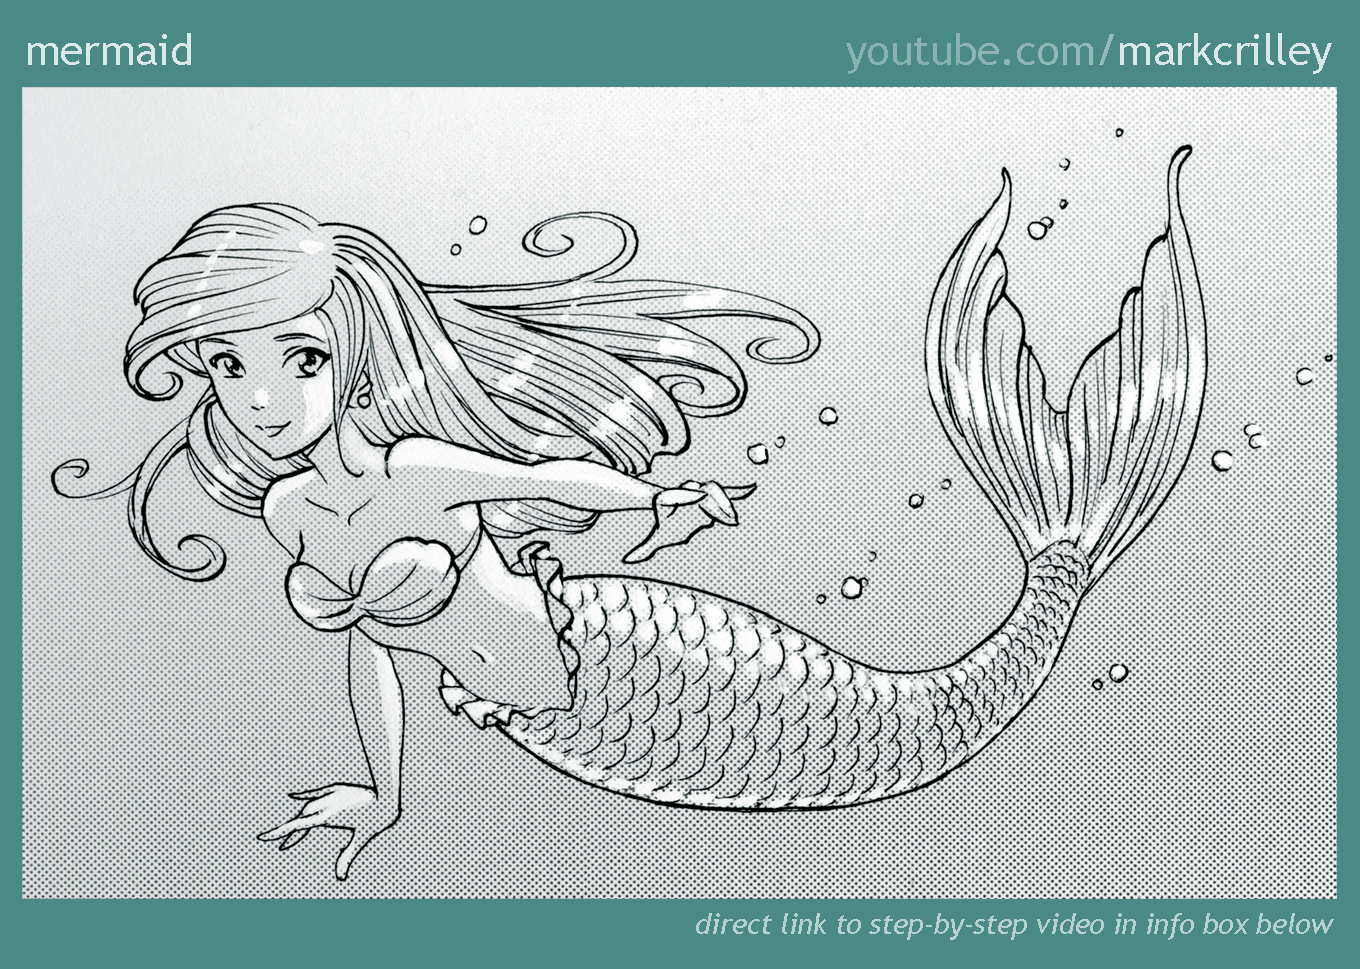 Mermaid by markcrilley